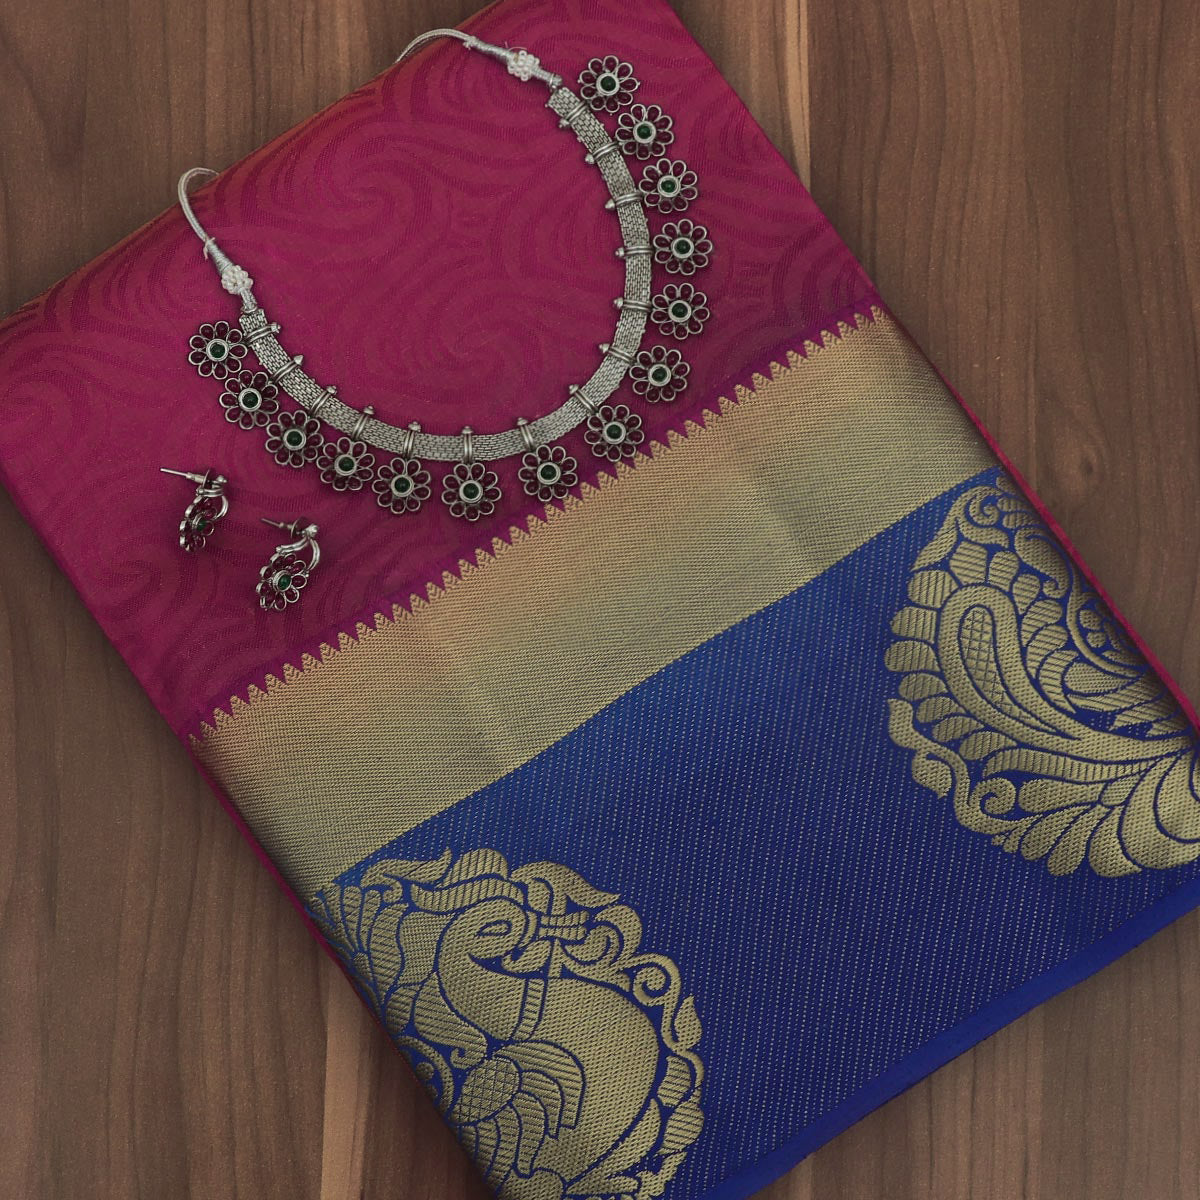 Raw Silk Saree Pink Shade and Blue with Annam Zari border and jewel